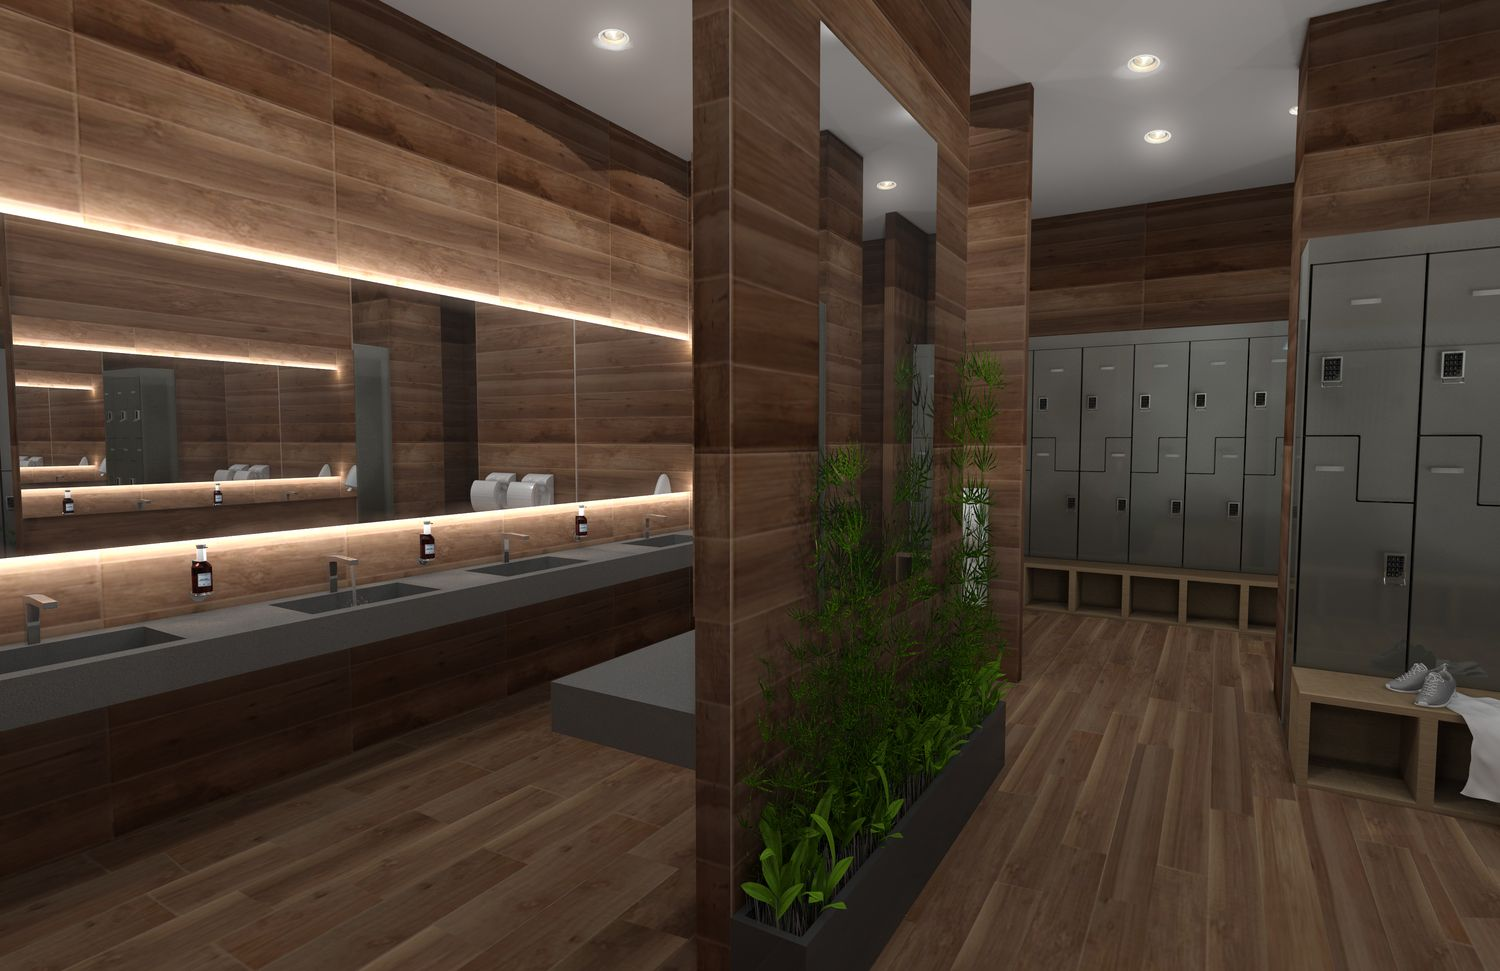 Locker room bathroom design - Bathrooms Of Crossfit Solace Renderings Of A New Luxury Crossfit Gym In Nyc